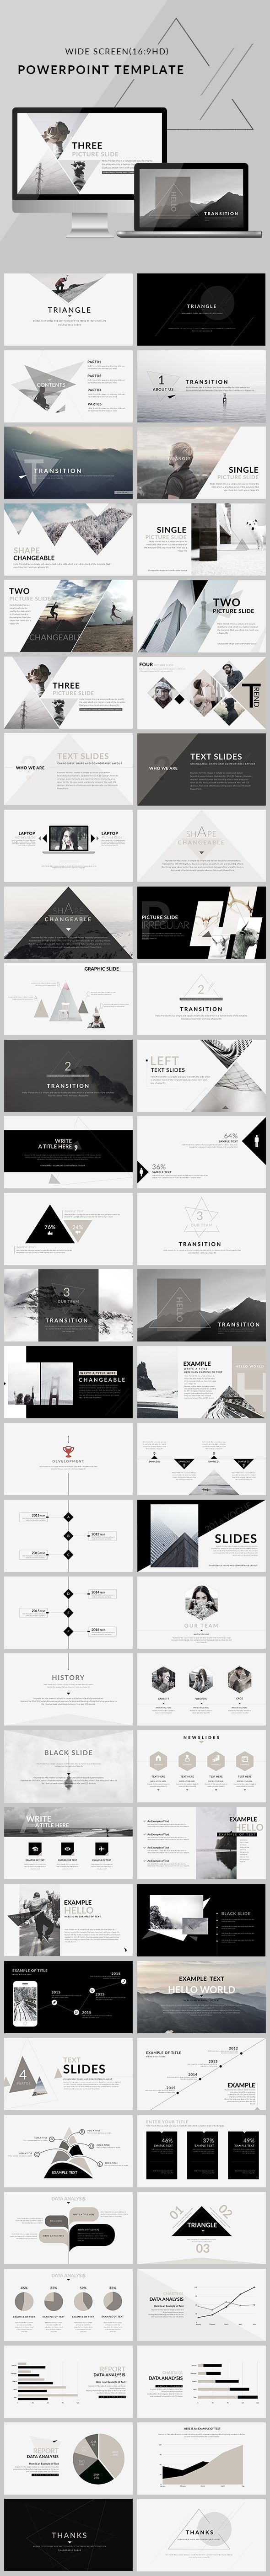 Triangle - Clean trend PowerPoint Presentation Template. Download here…